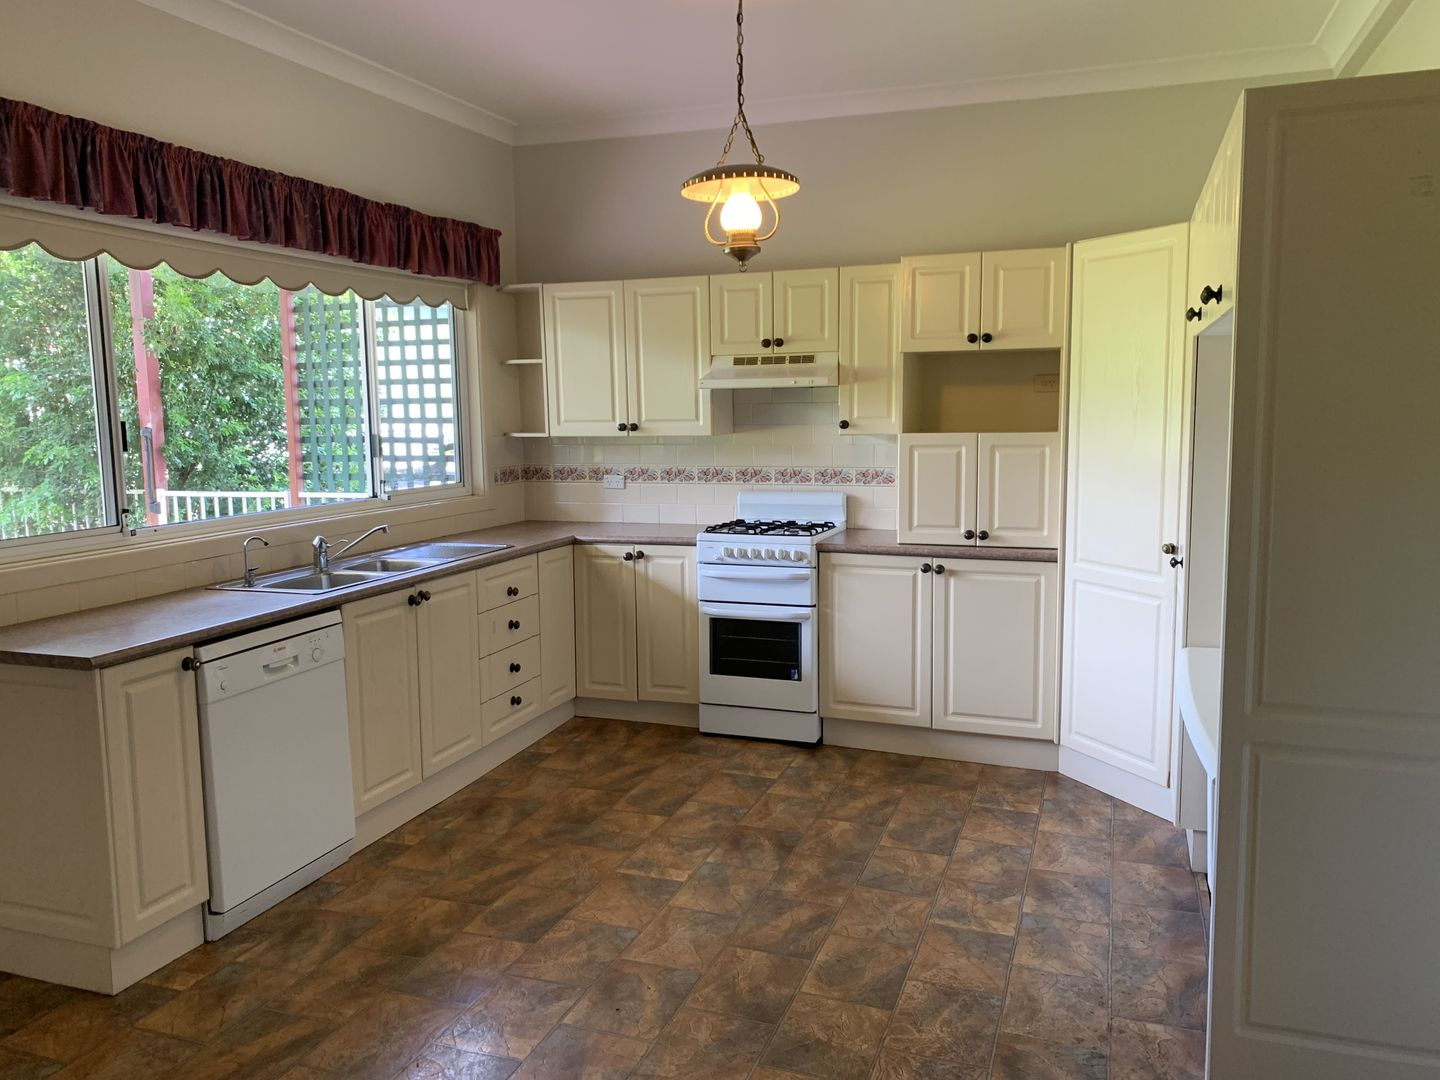 1b Grose Wold Rd, Grose Wold NSW 2753, Image 1